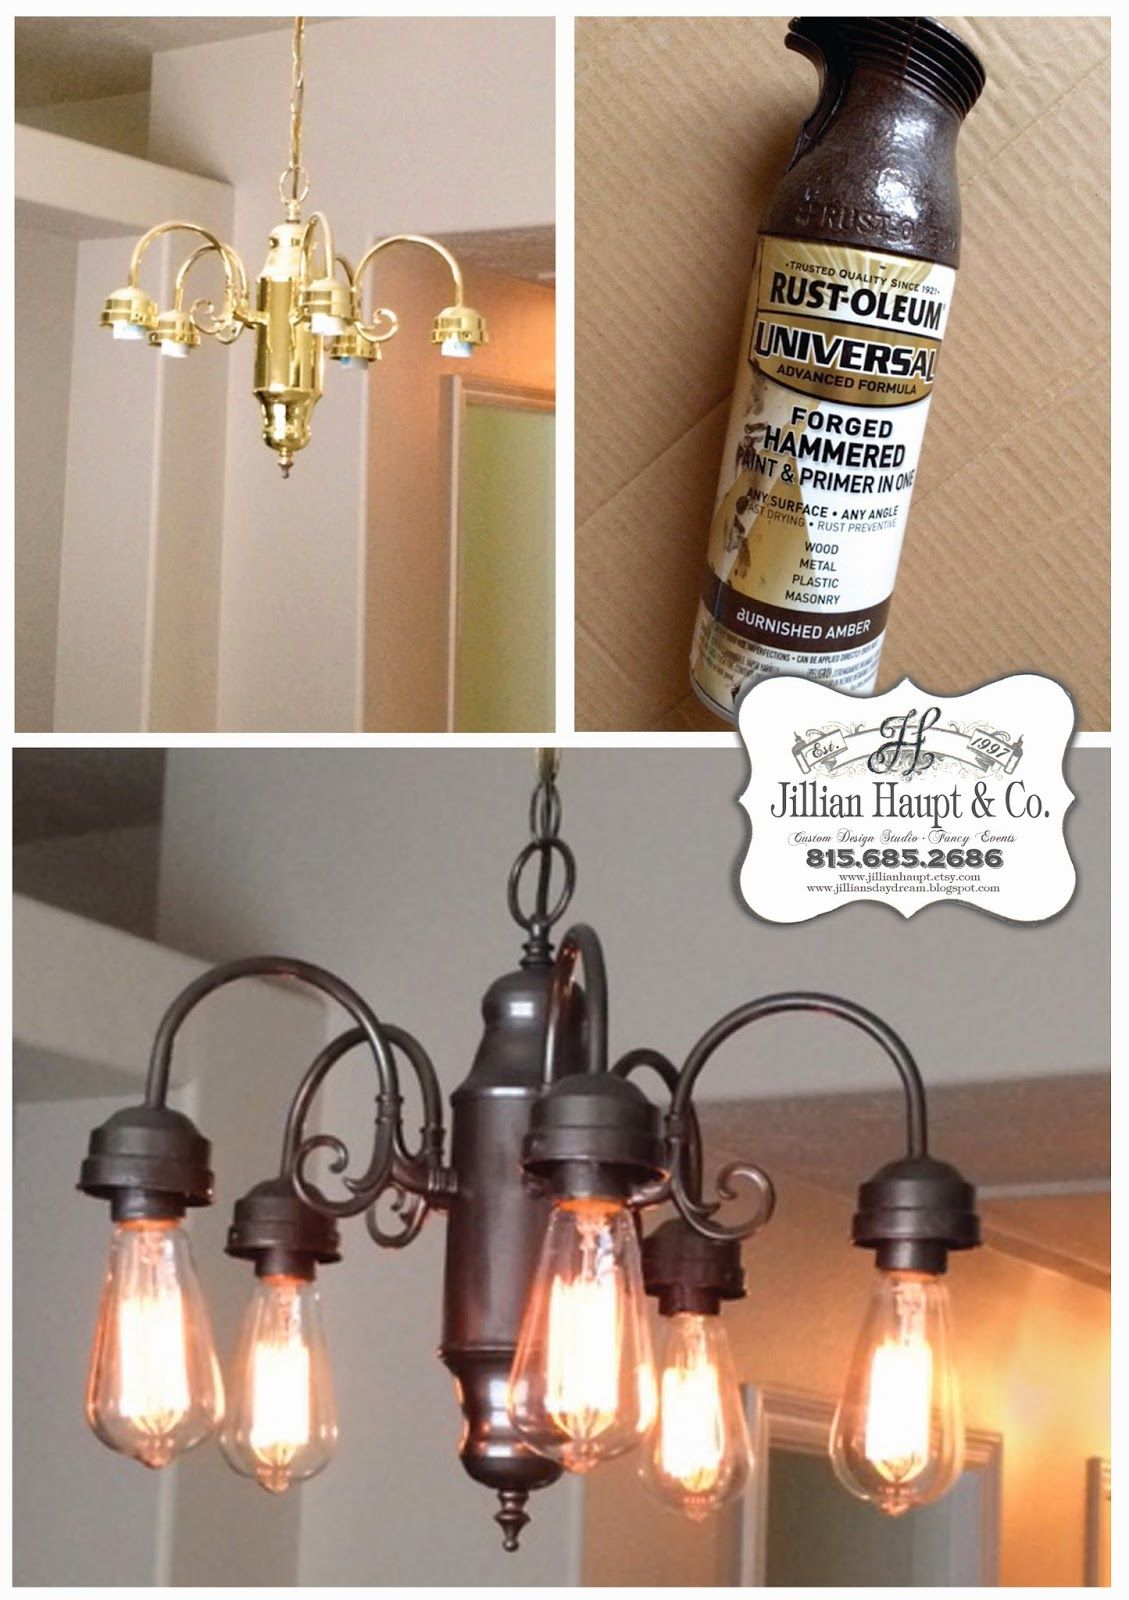 How To Get Rid Of Rust On Bathroom Light Fixture